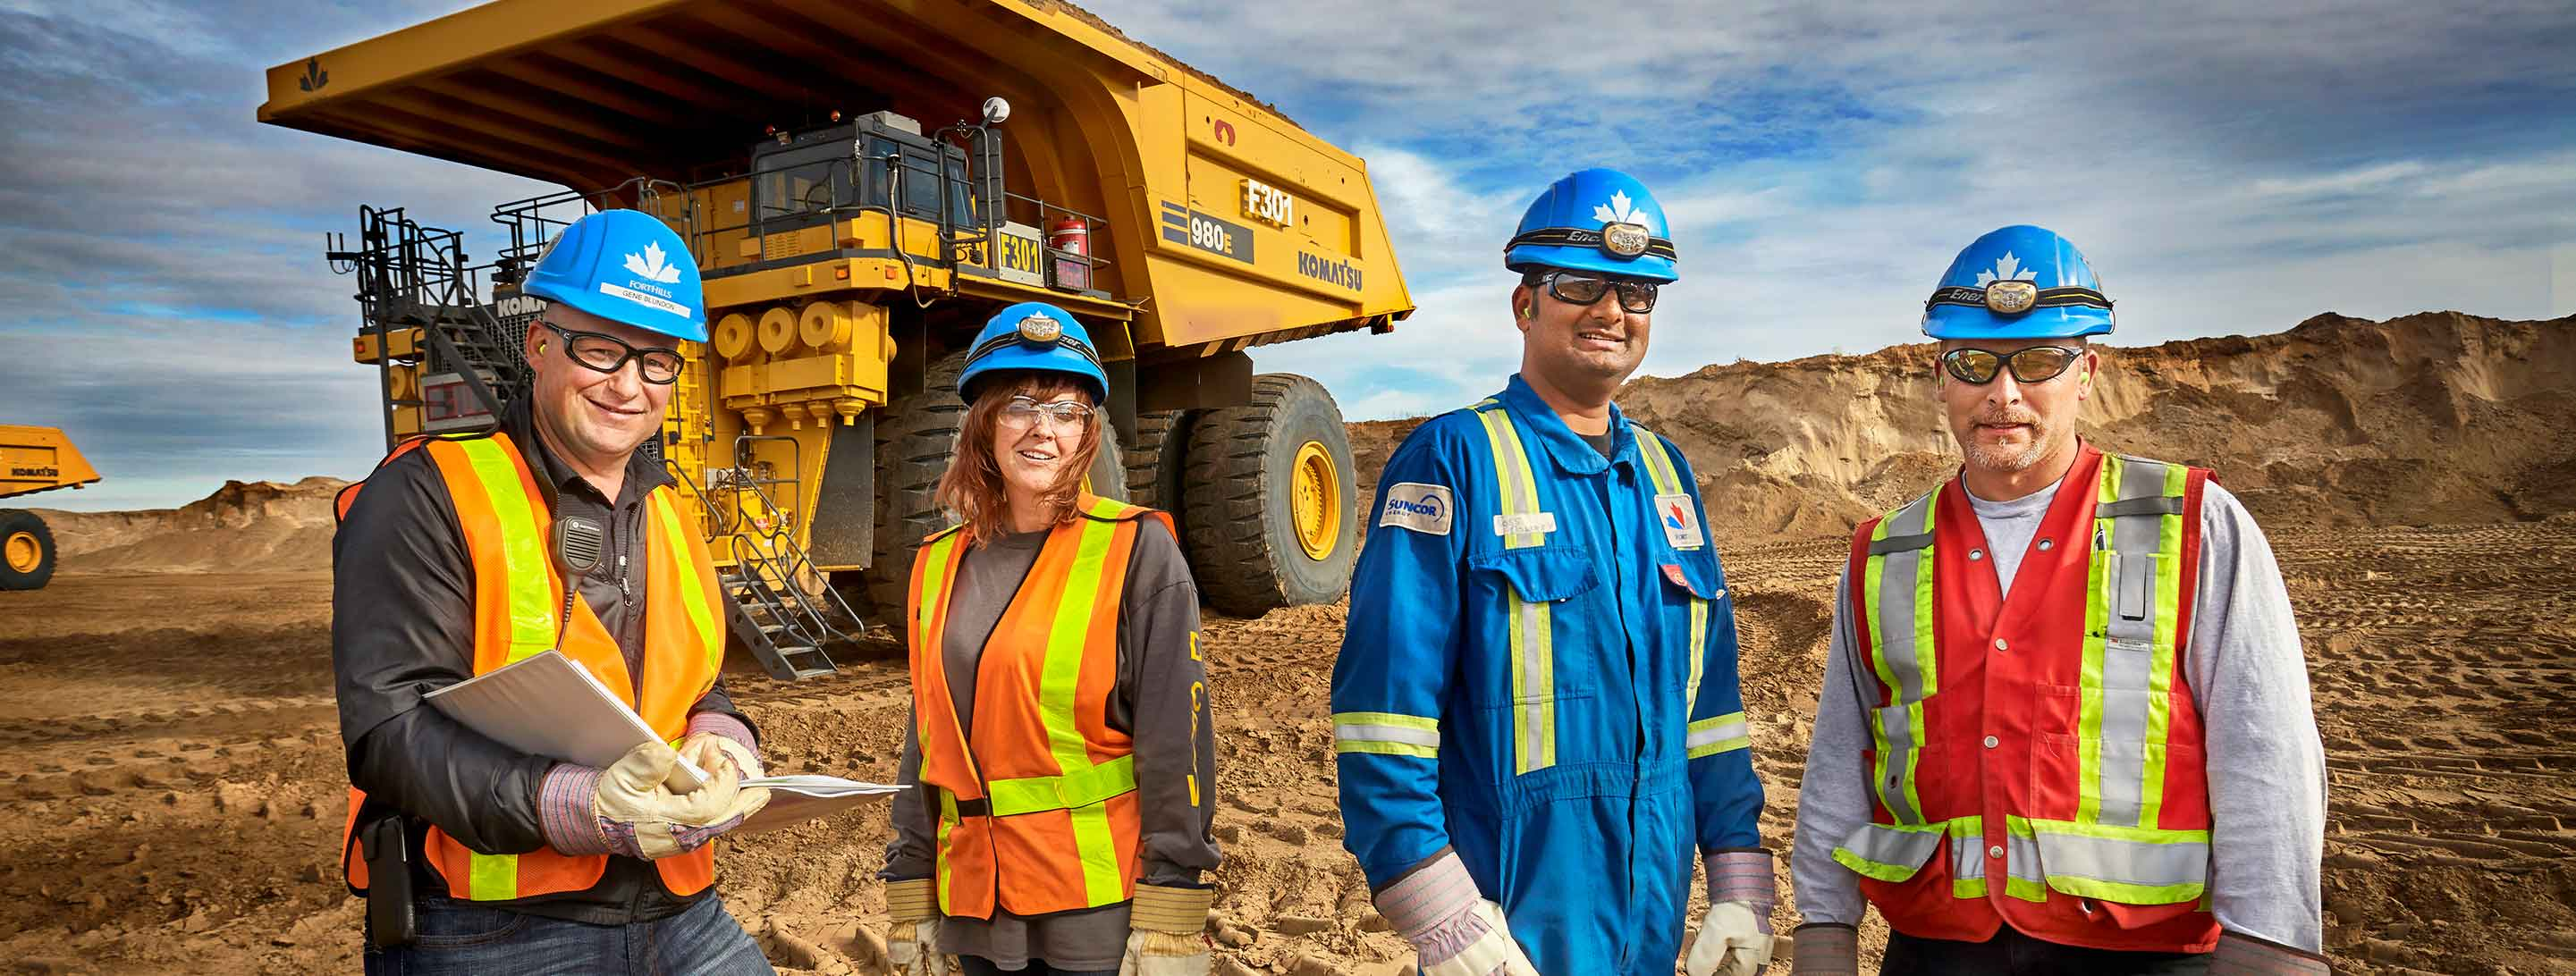 Four Fort Hills employees stand in front of a mining haul truck at the Fort Hills site, near Fort McMurray, Alberta